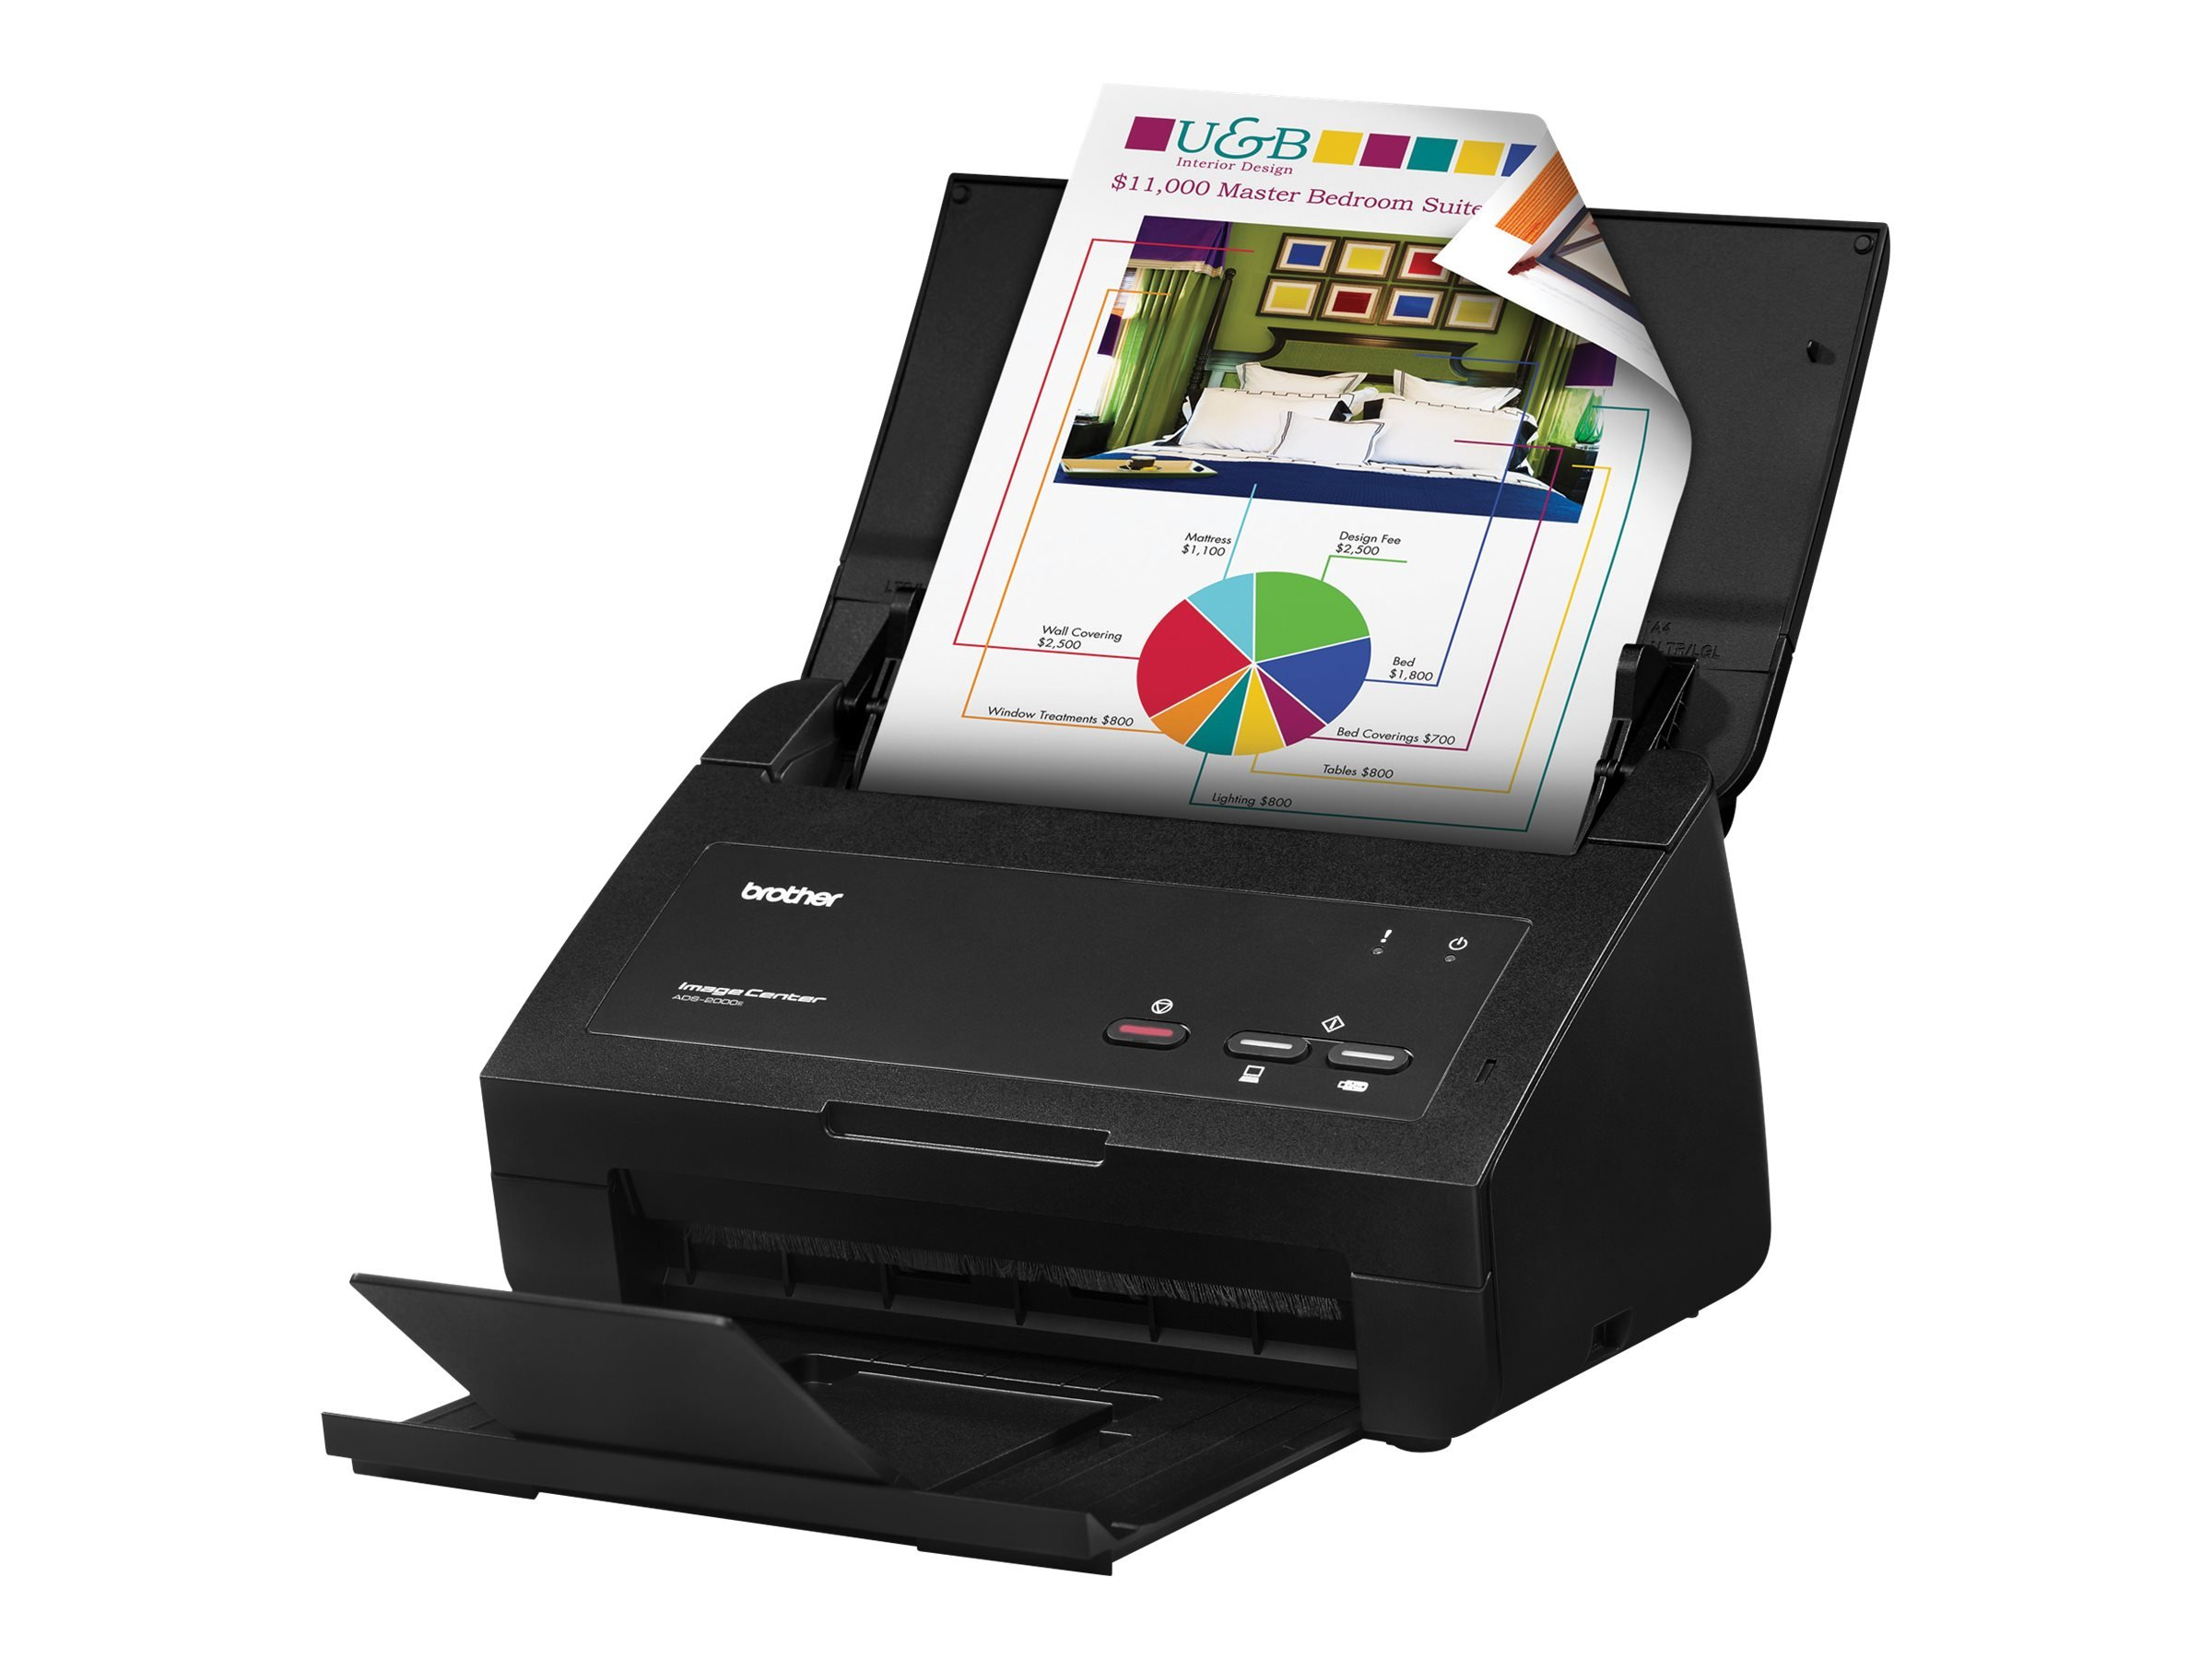 Brother ImageCenter ADS-2000e High Speed Desktop Document Scanner by Brother